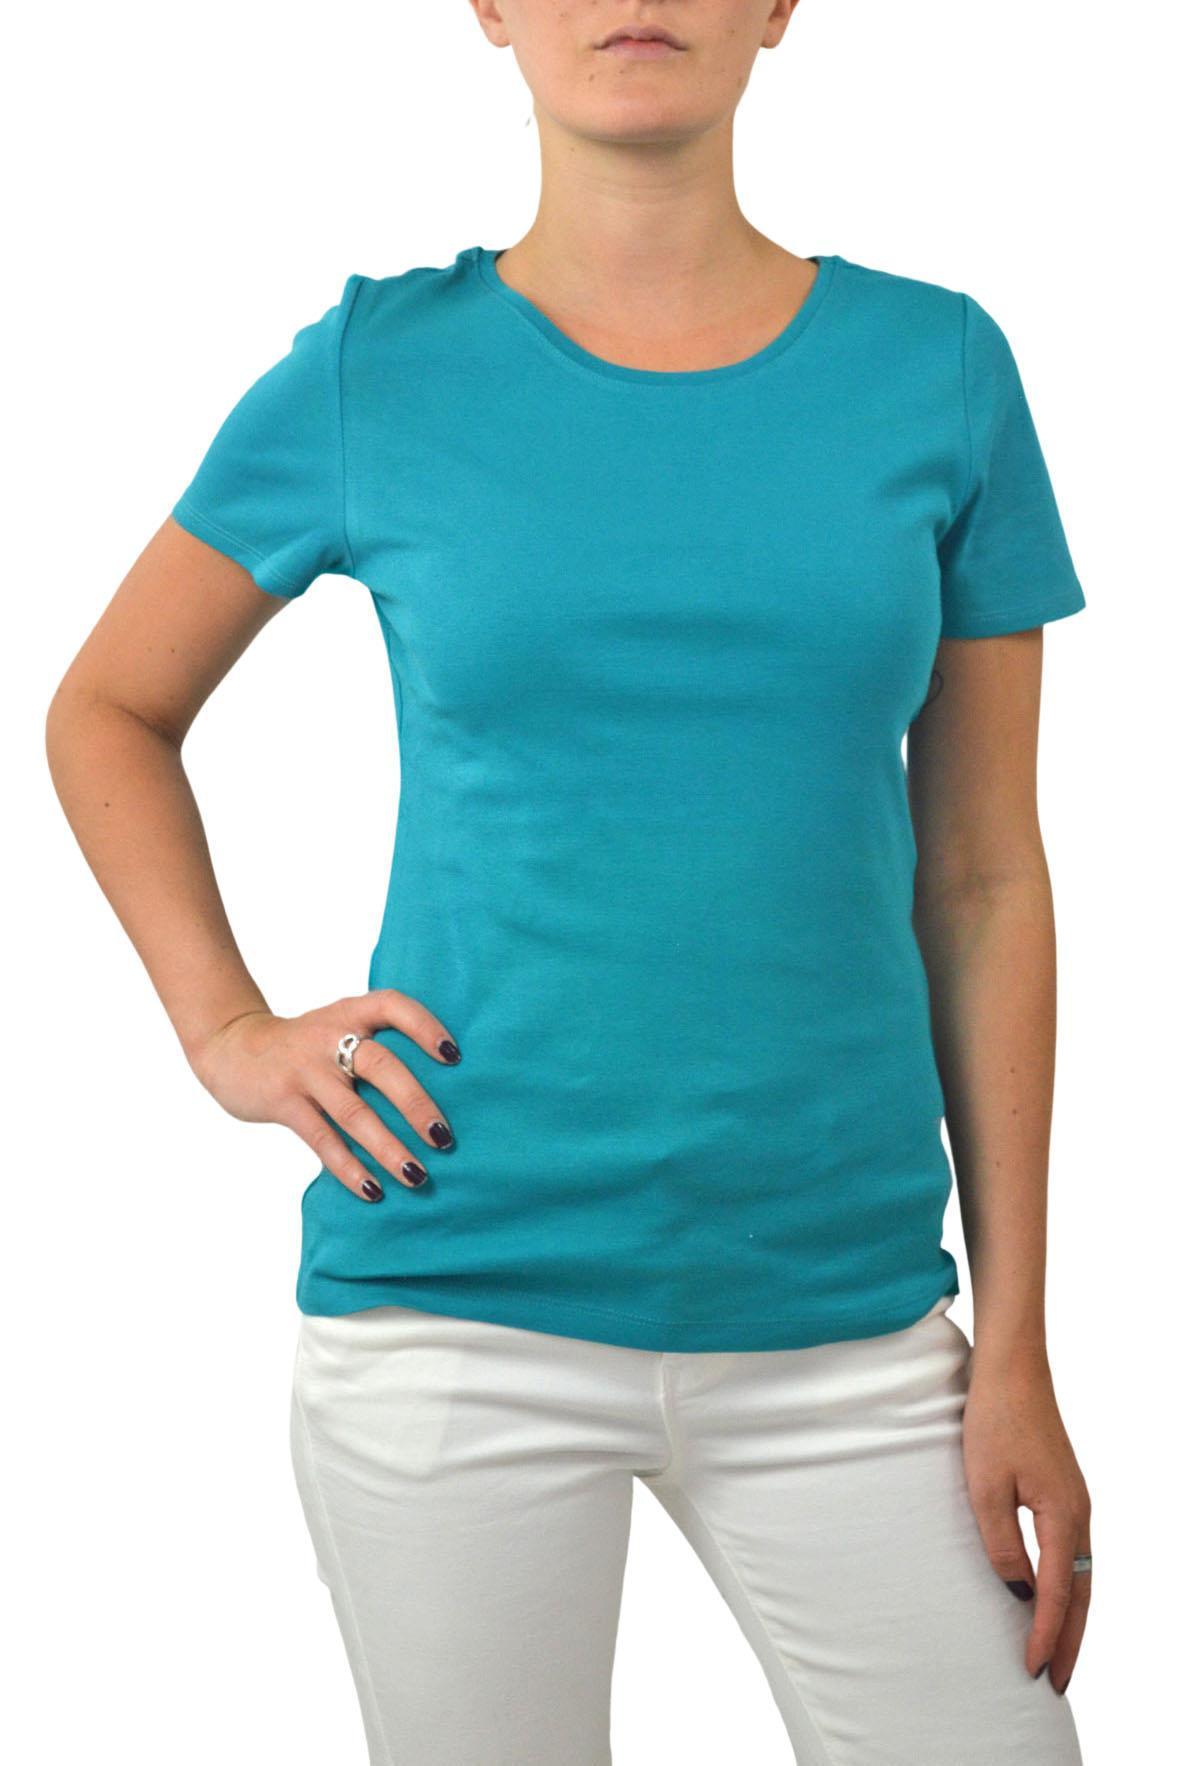 M-amp-S-Ladies-Short-Sleeve-Cotton-T-Shirt-Slim-Fit-Curved-Hem-Size-4-to-24 thumbnail 21